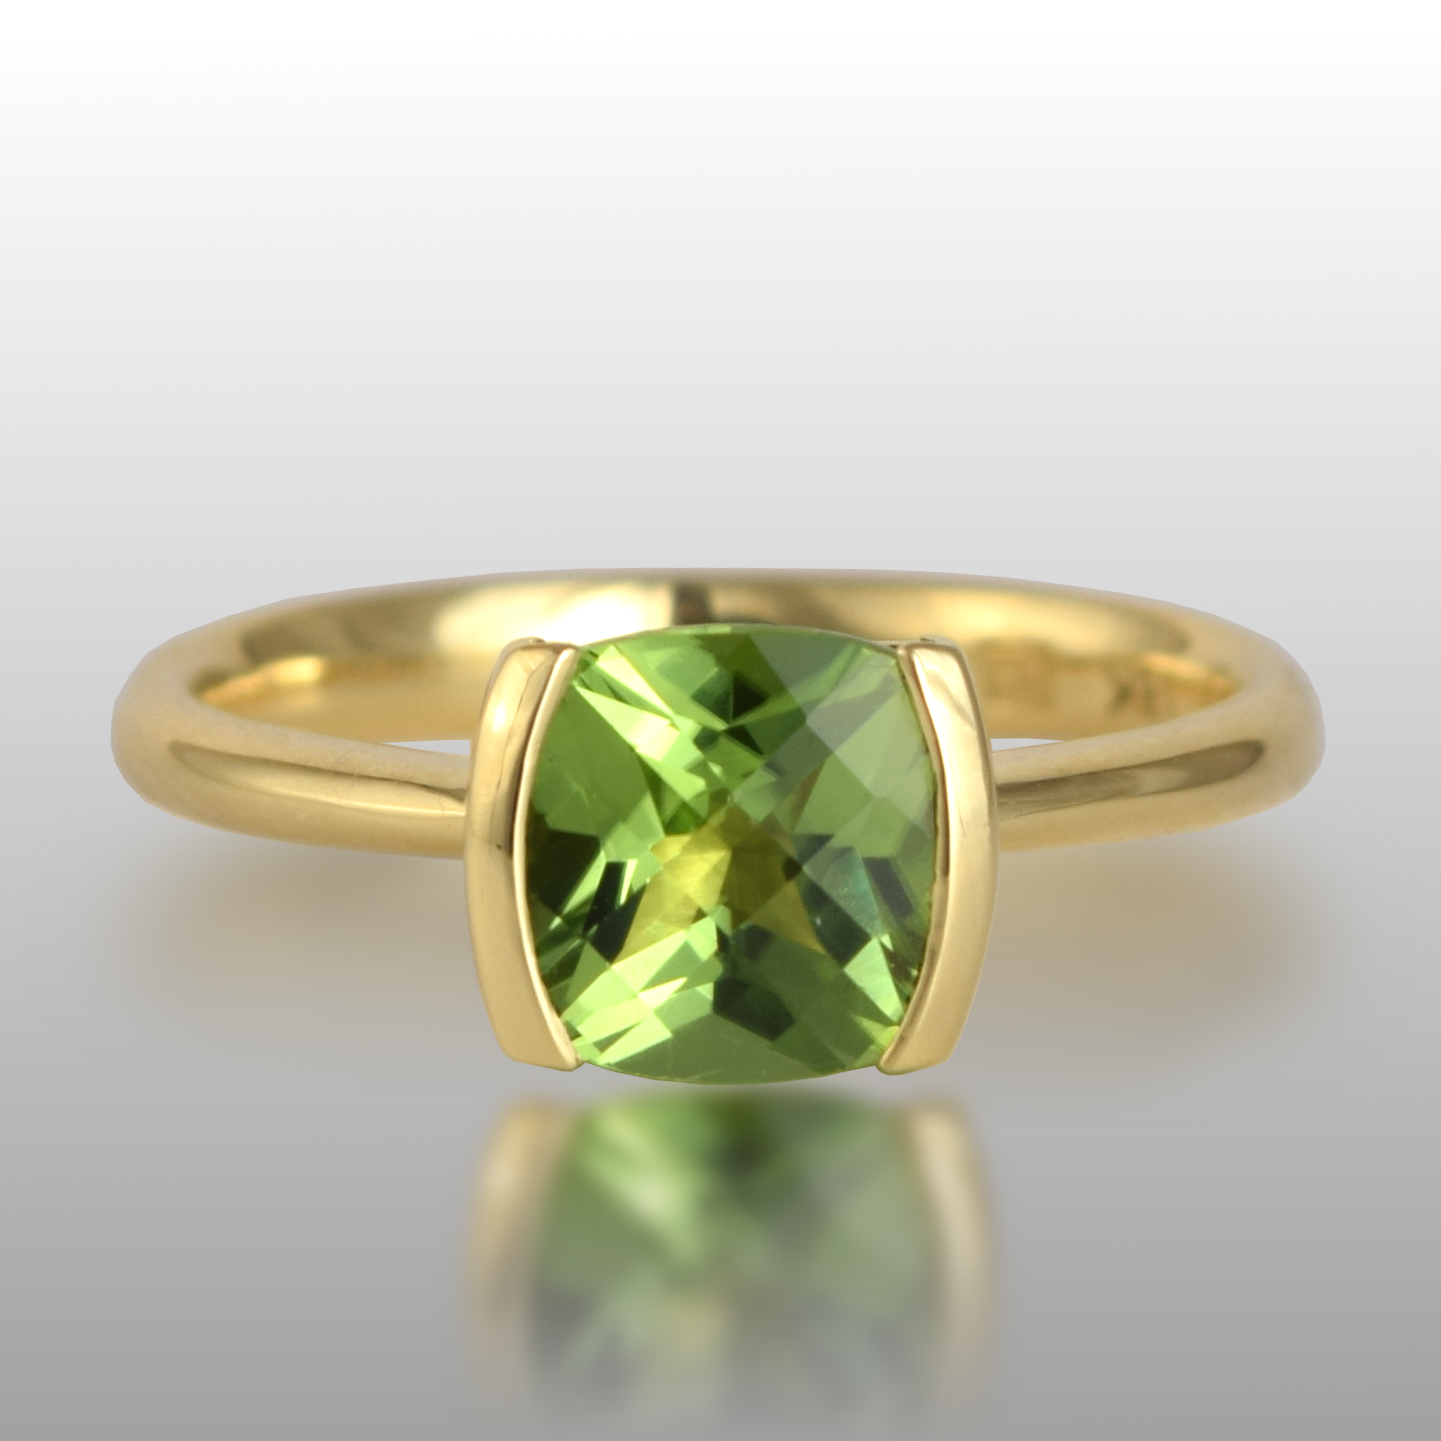 Contemporary Solitaire Ring with Square Cushion Cut Peridot in 18k Gold by Pratima Design Fine Art Jewelry